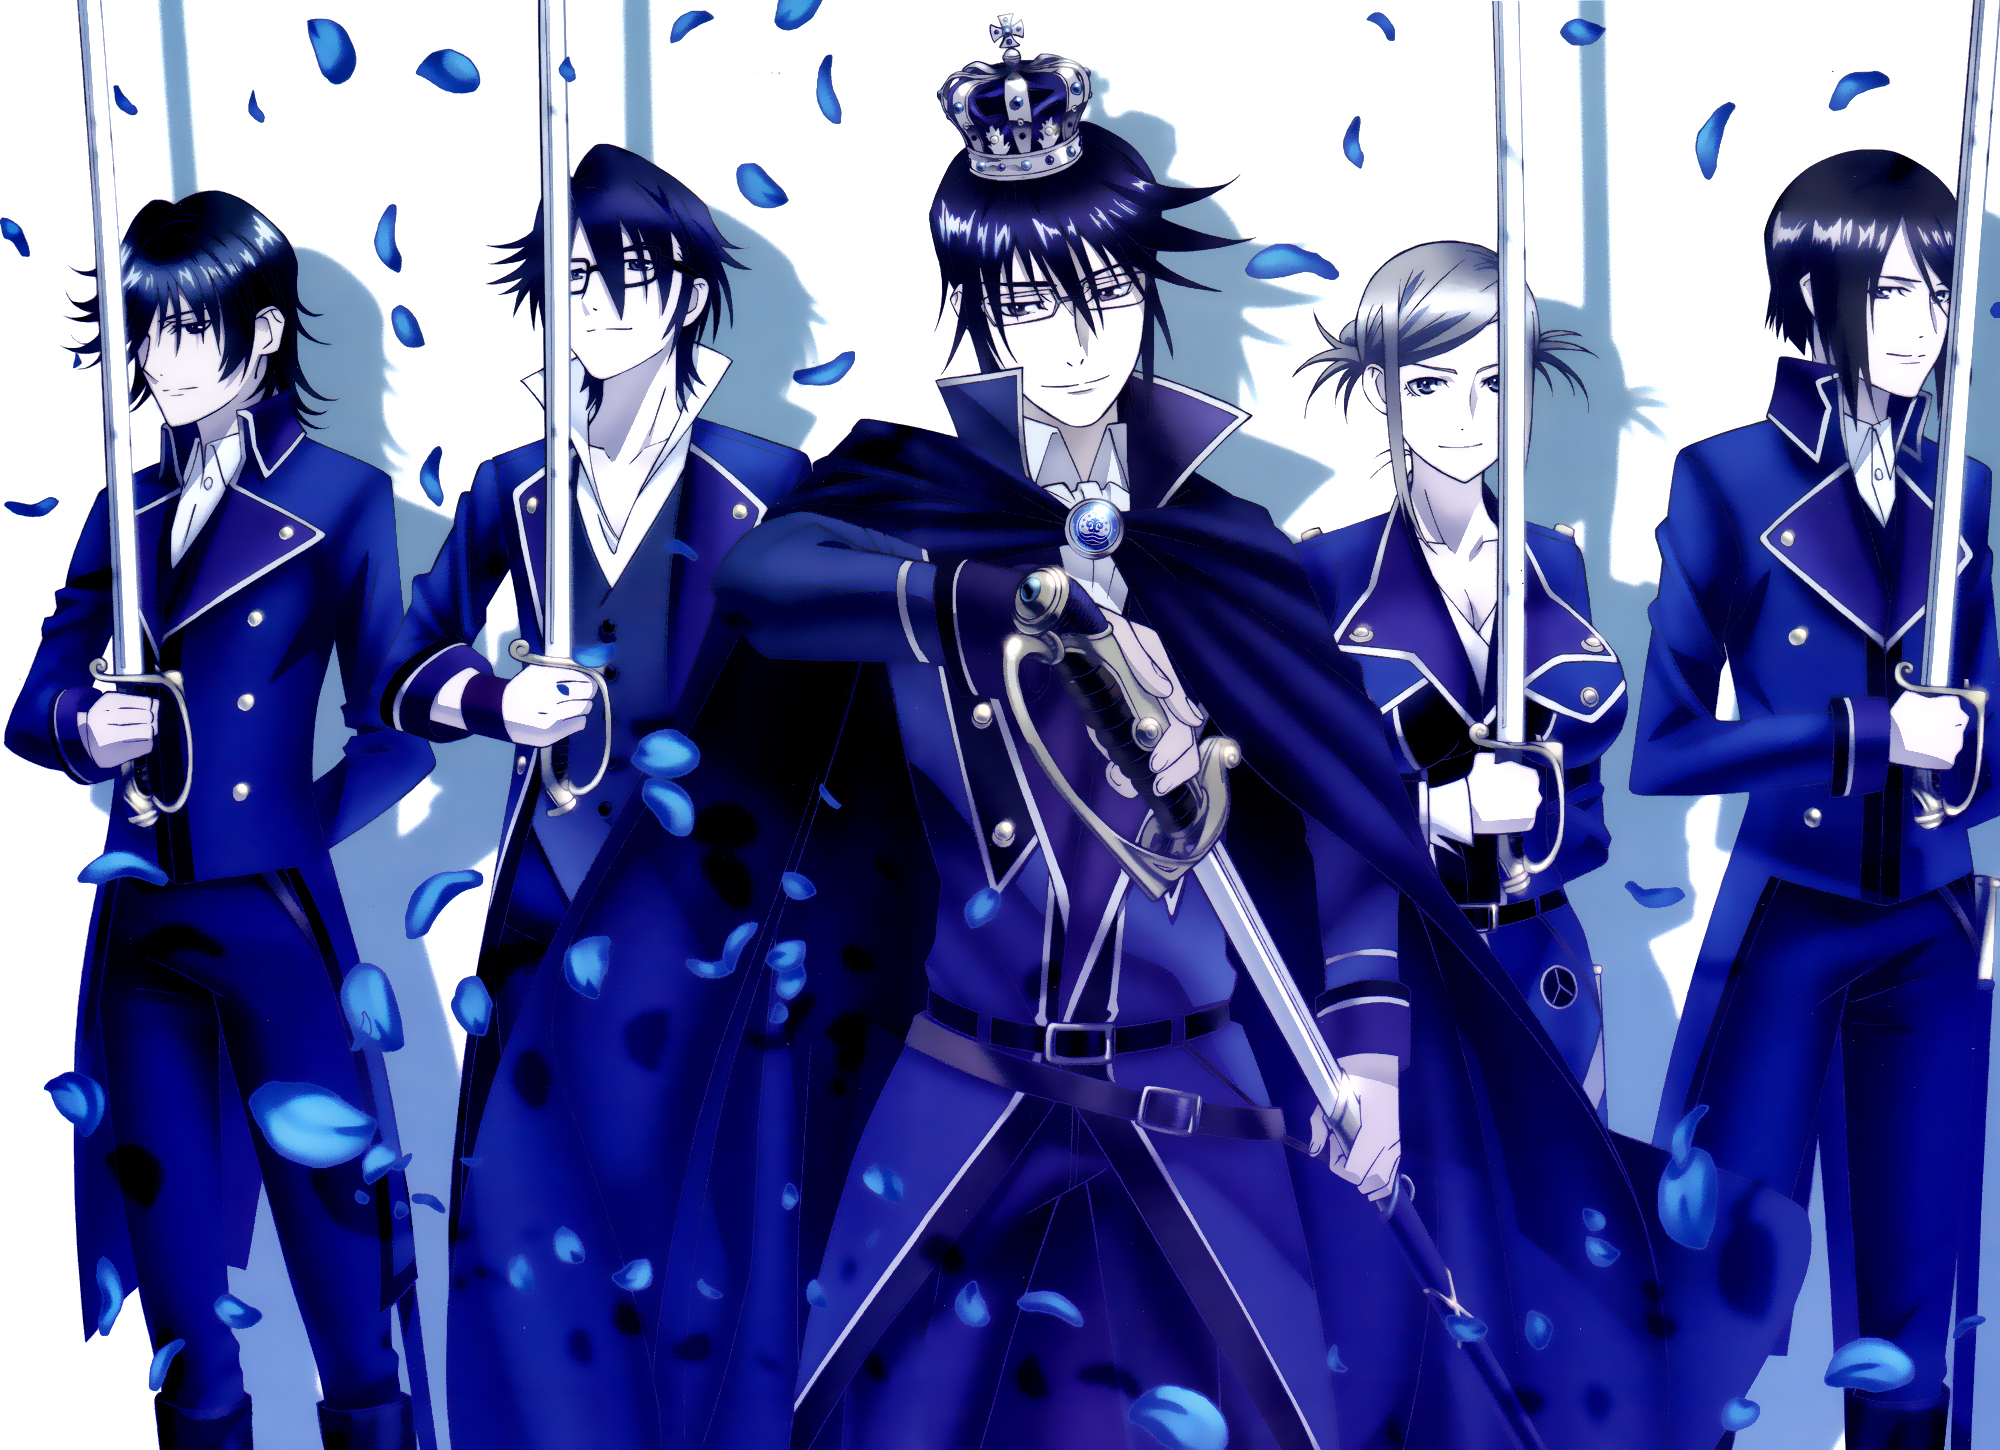 K Project The Anime Kingdom Wallpaper 37519391 Fanpop